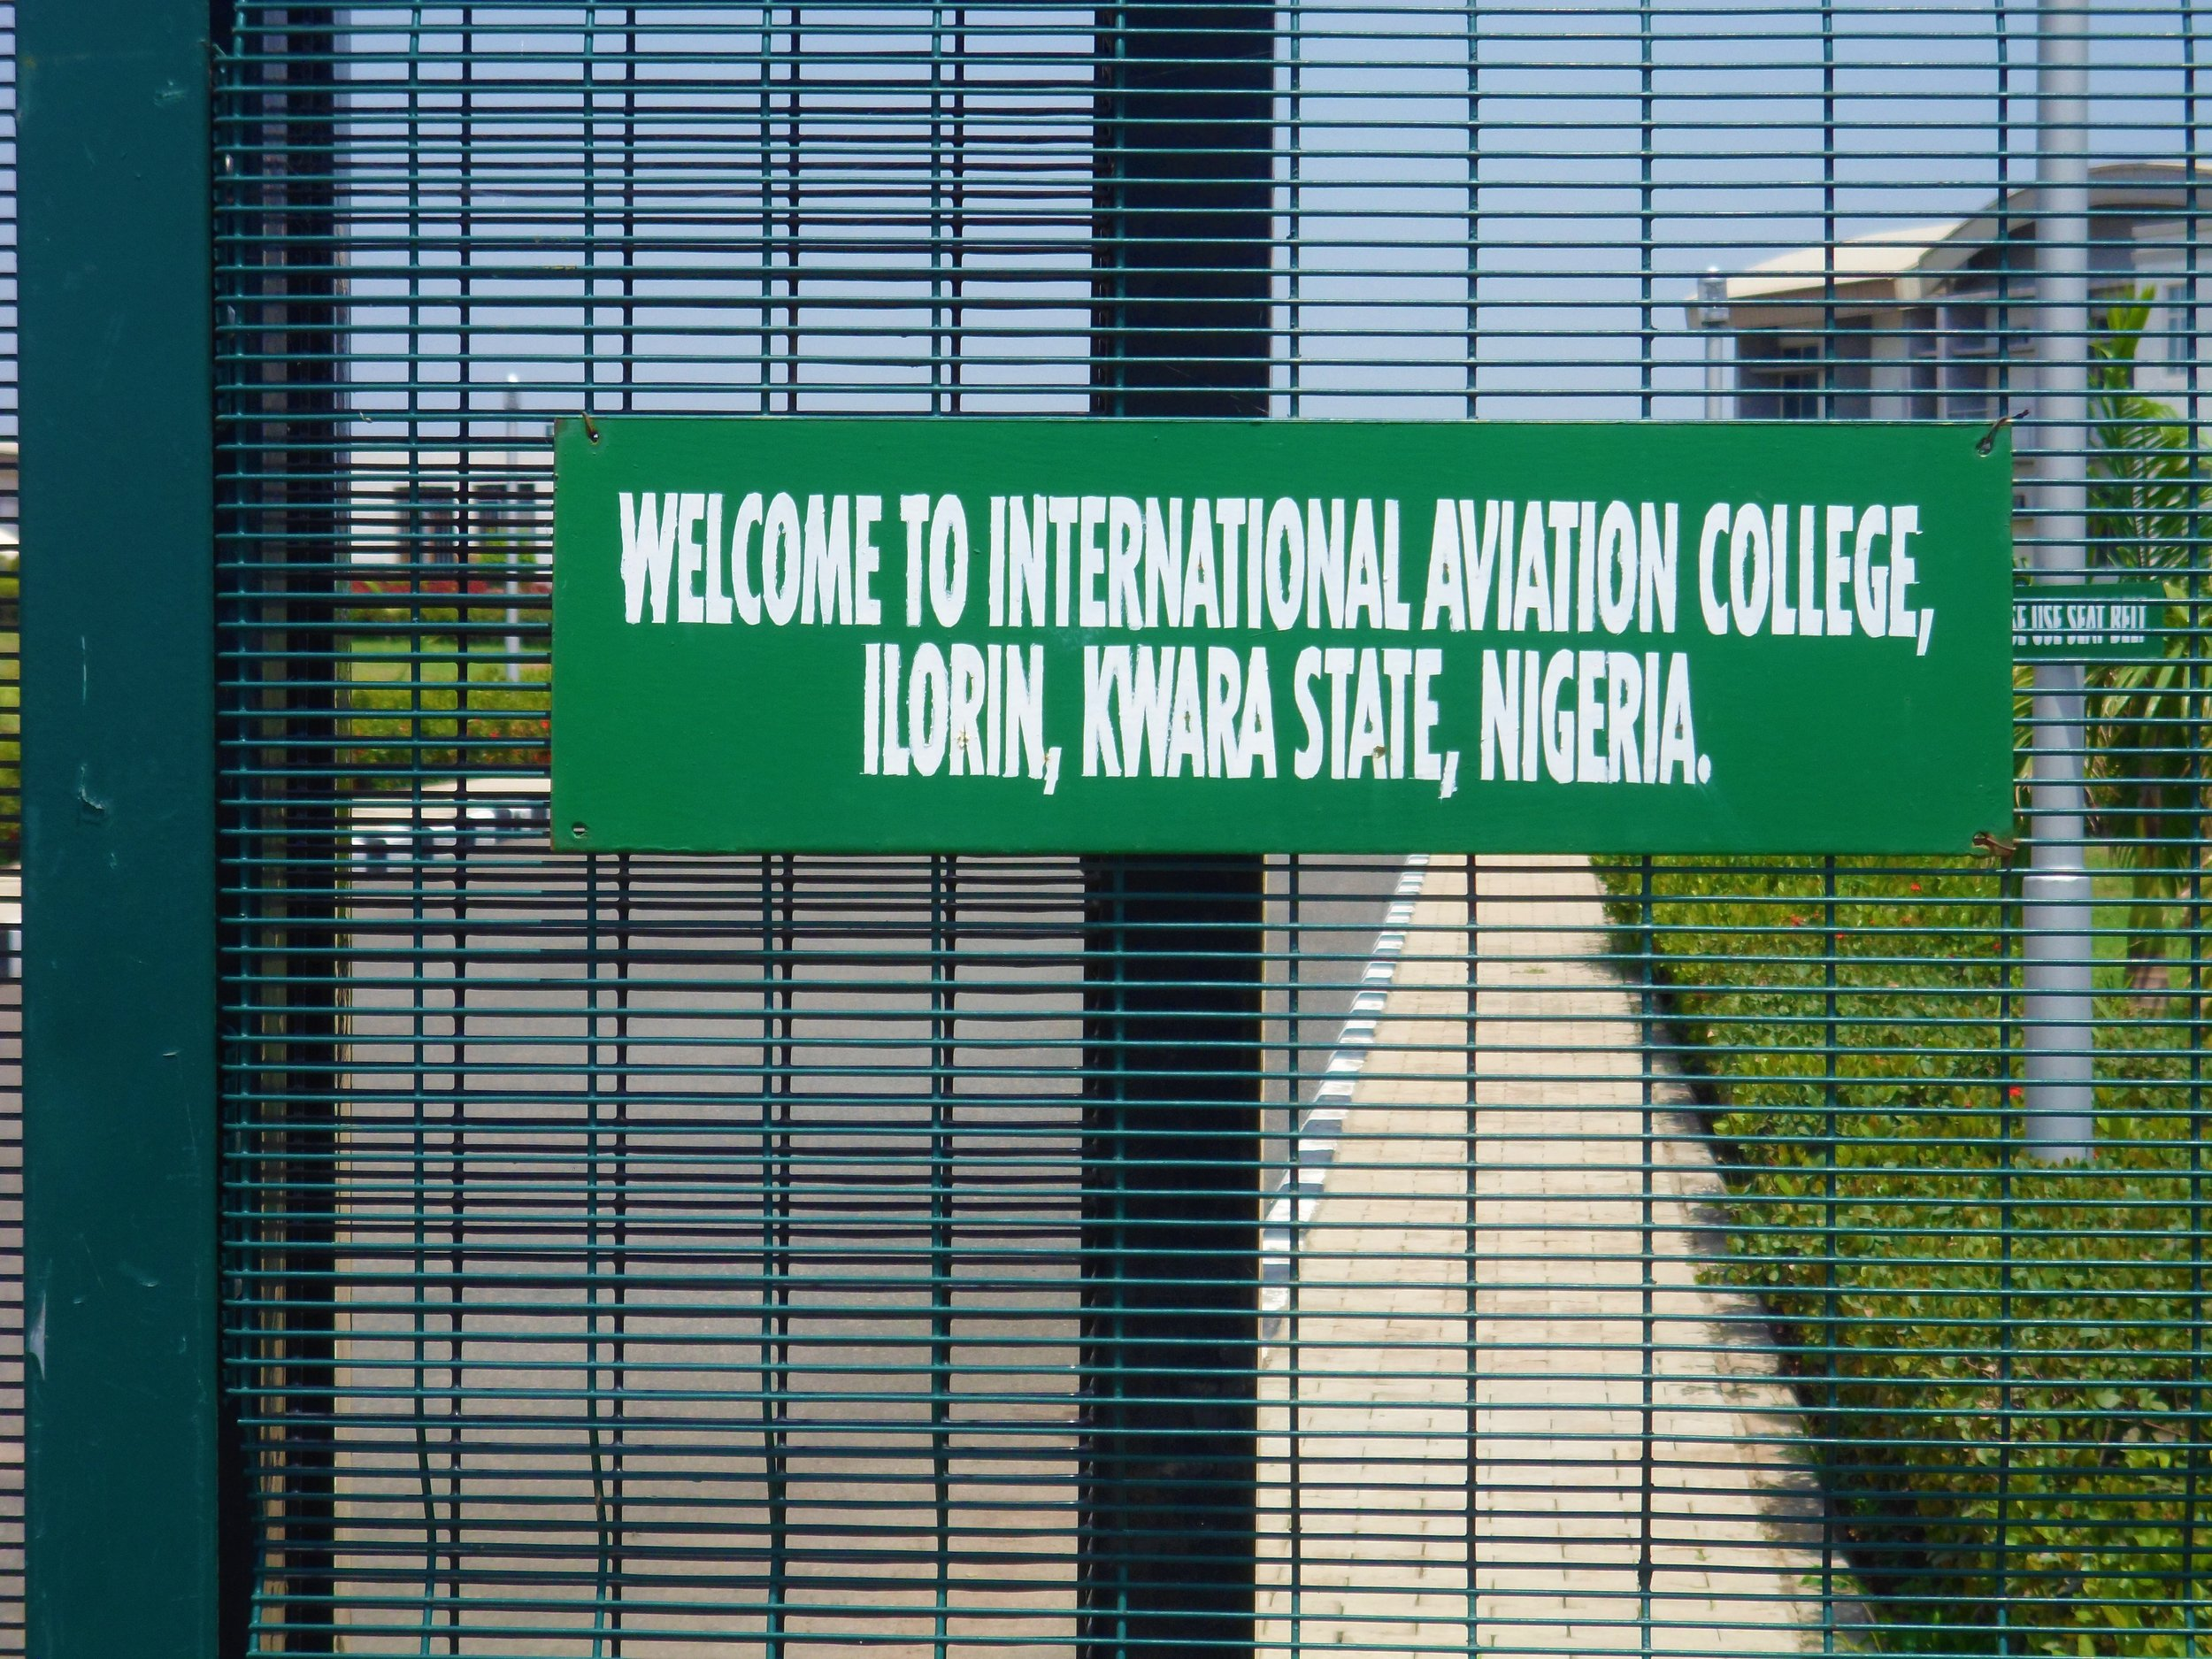 INTERNATIONAL AVIATION COLLEGE KWARA